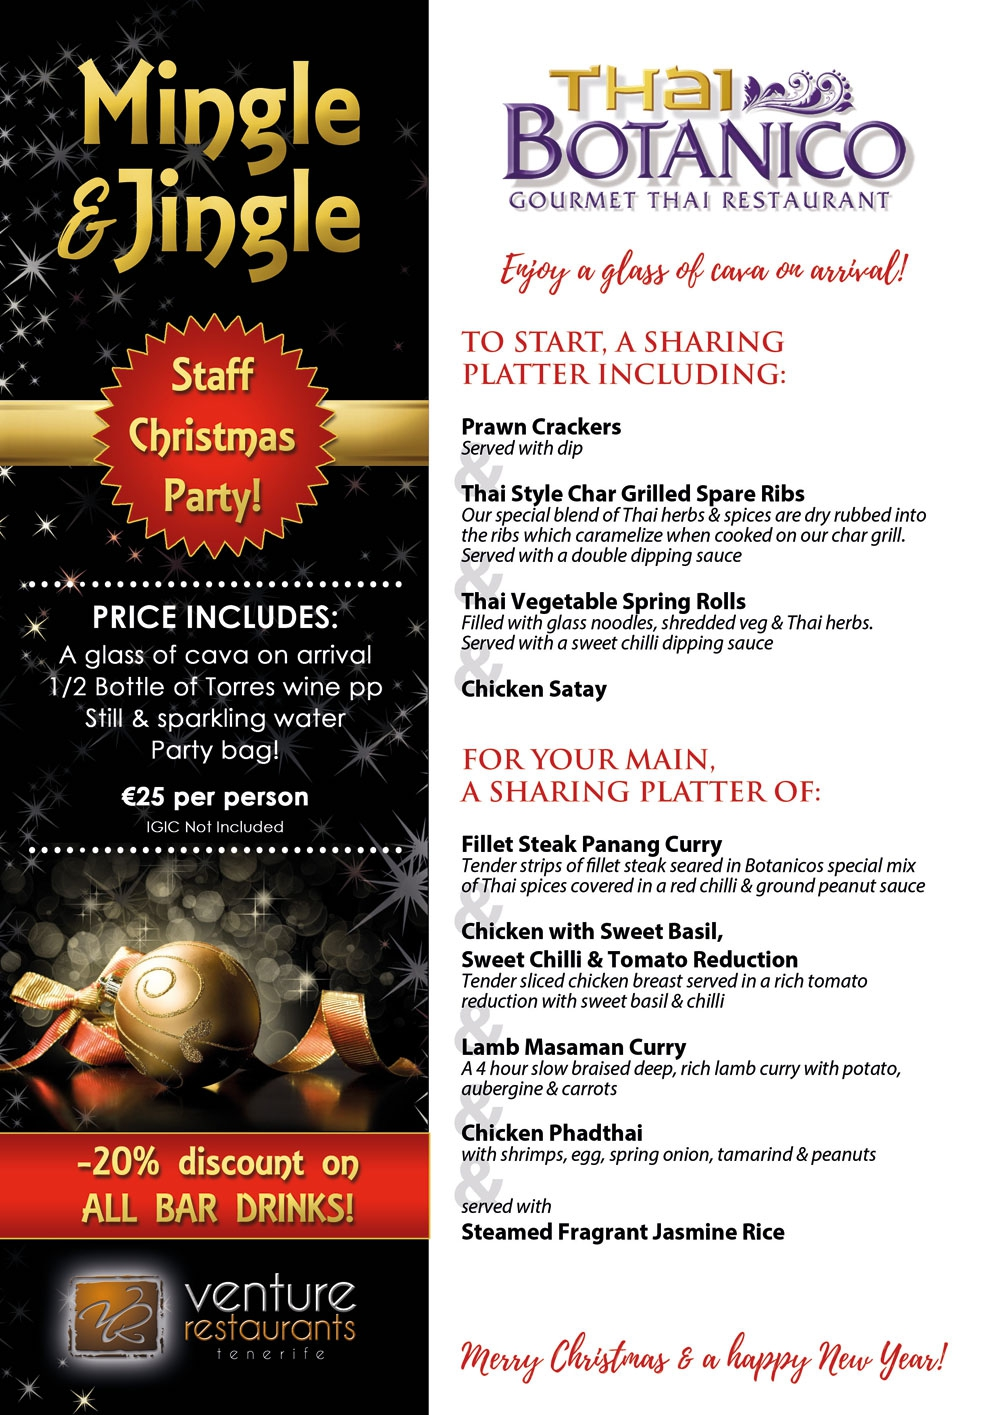 Book your Christmas Party at Thai Botanico